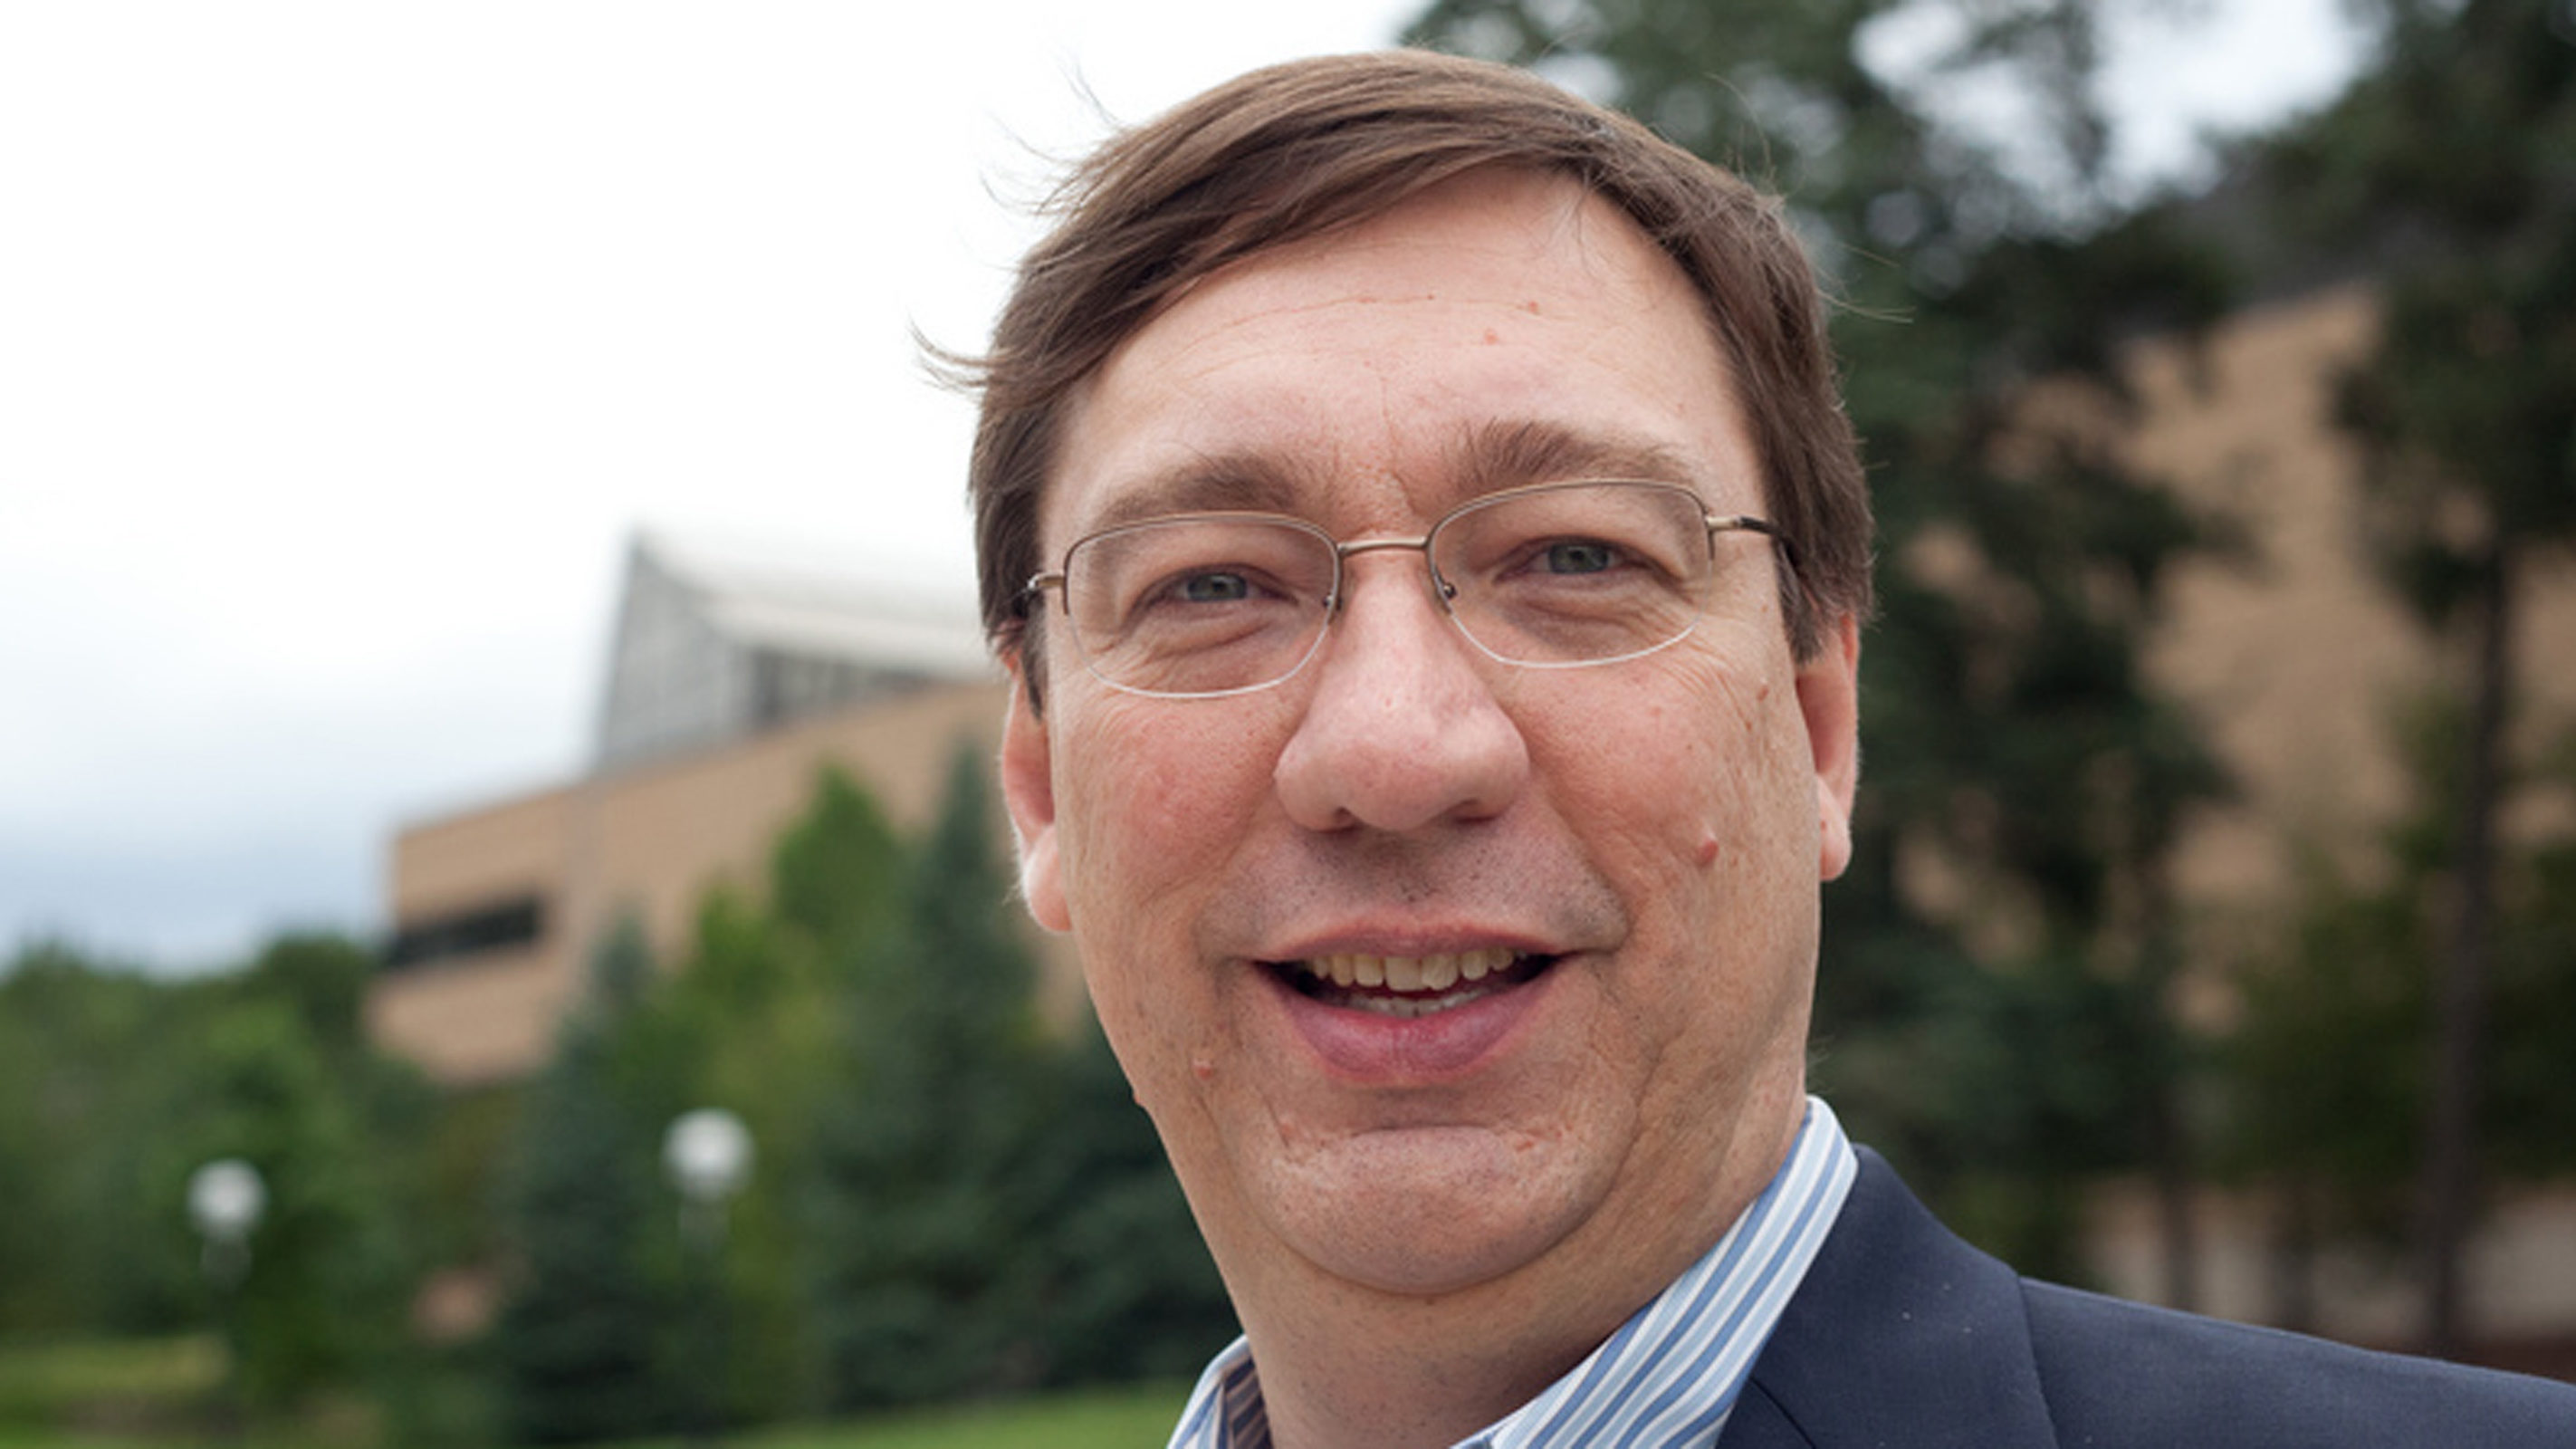 Carlos Cesnik awarded 2017-18 Monroe-Brown Foundation Research Excellence Award